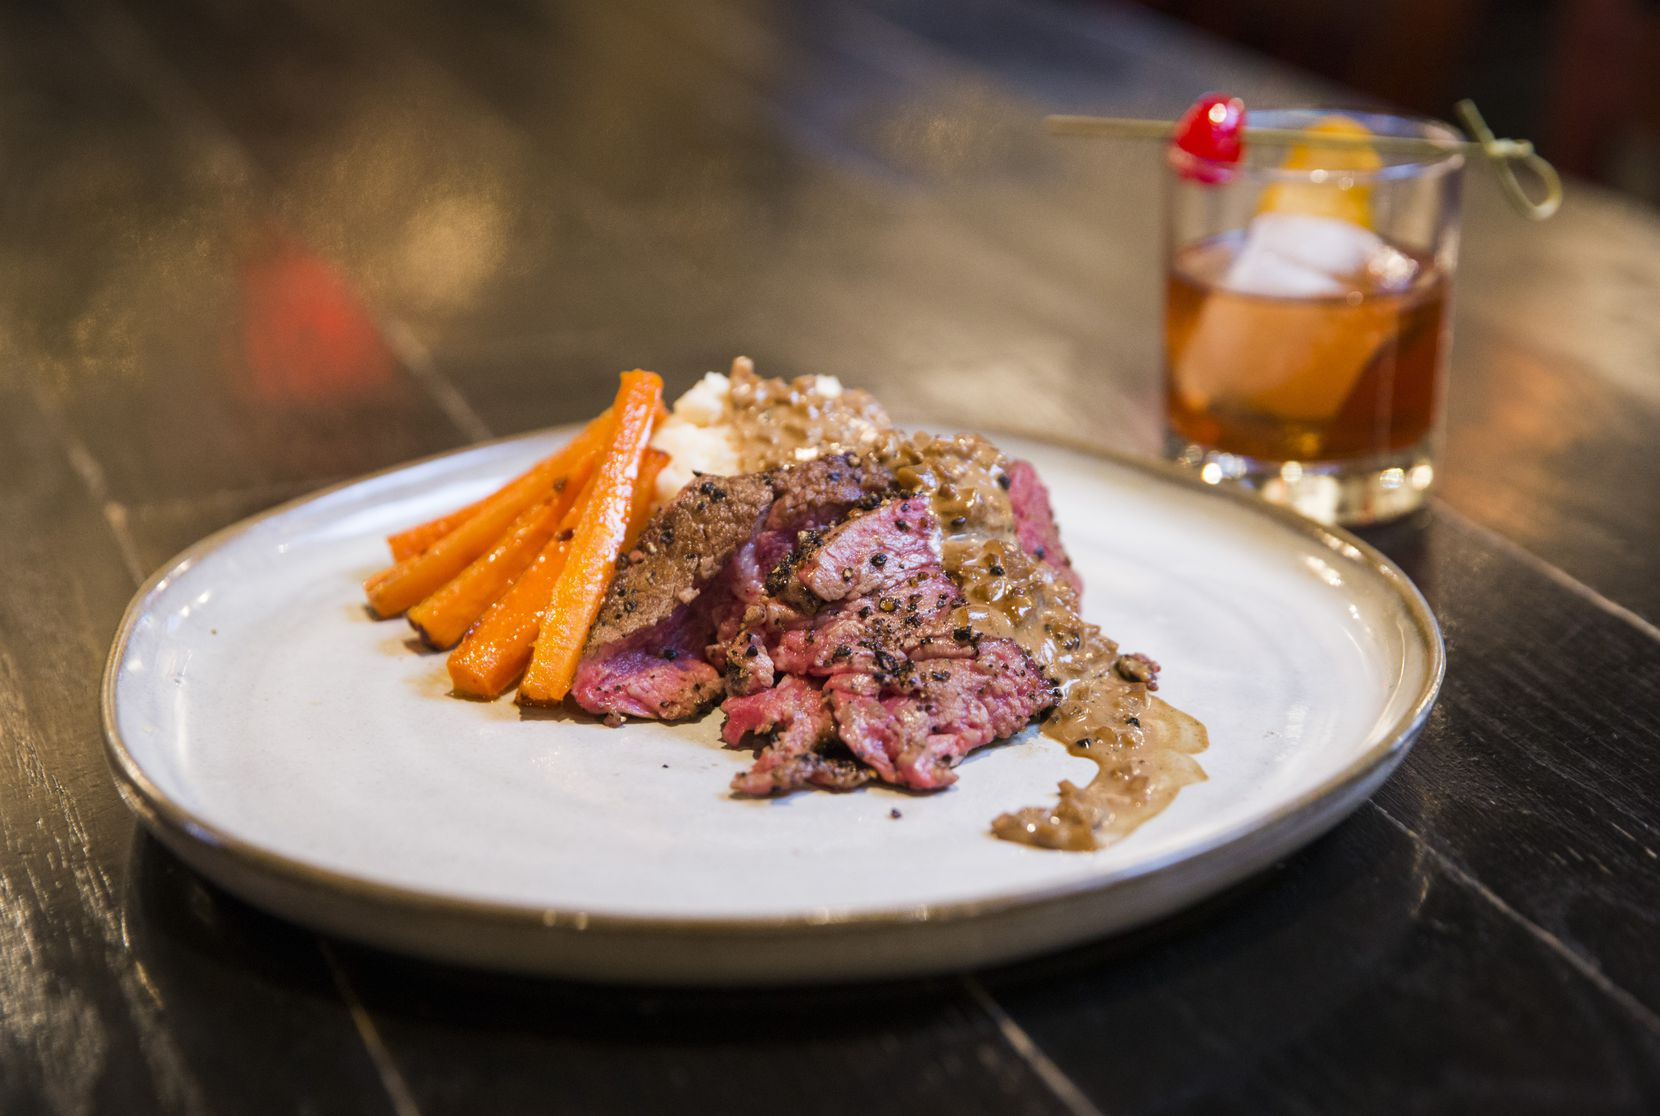 Beef tenderloin au poivre with blue cheese mash paired with a Kooper Family Rye Old Fashioned as part of The Holy Grail Pub's five-course New Year's Eve five course pairing menu, as photographed on Tuesday, December 17, 2019 in Plano. (Ashley Landis/The Dallas Morning News)